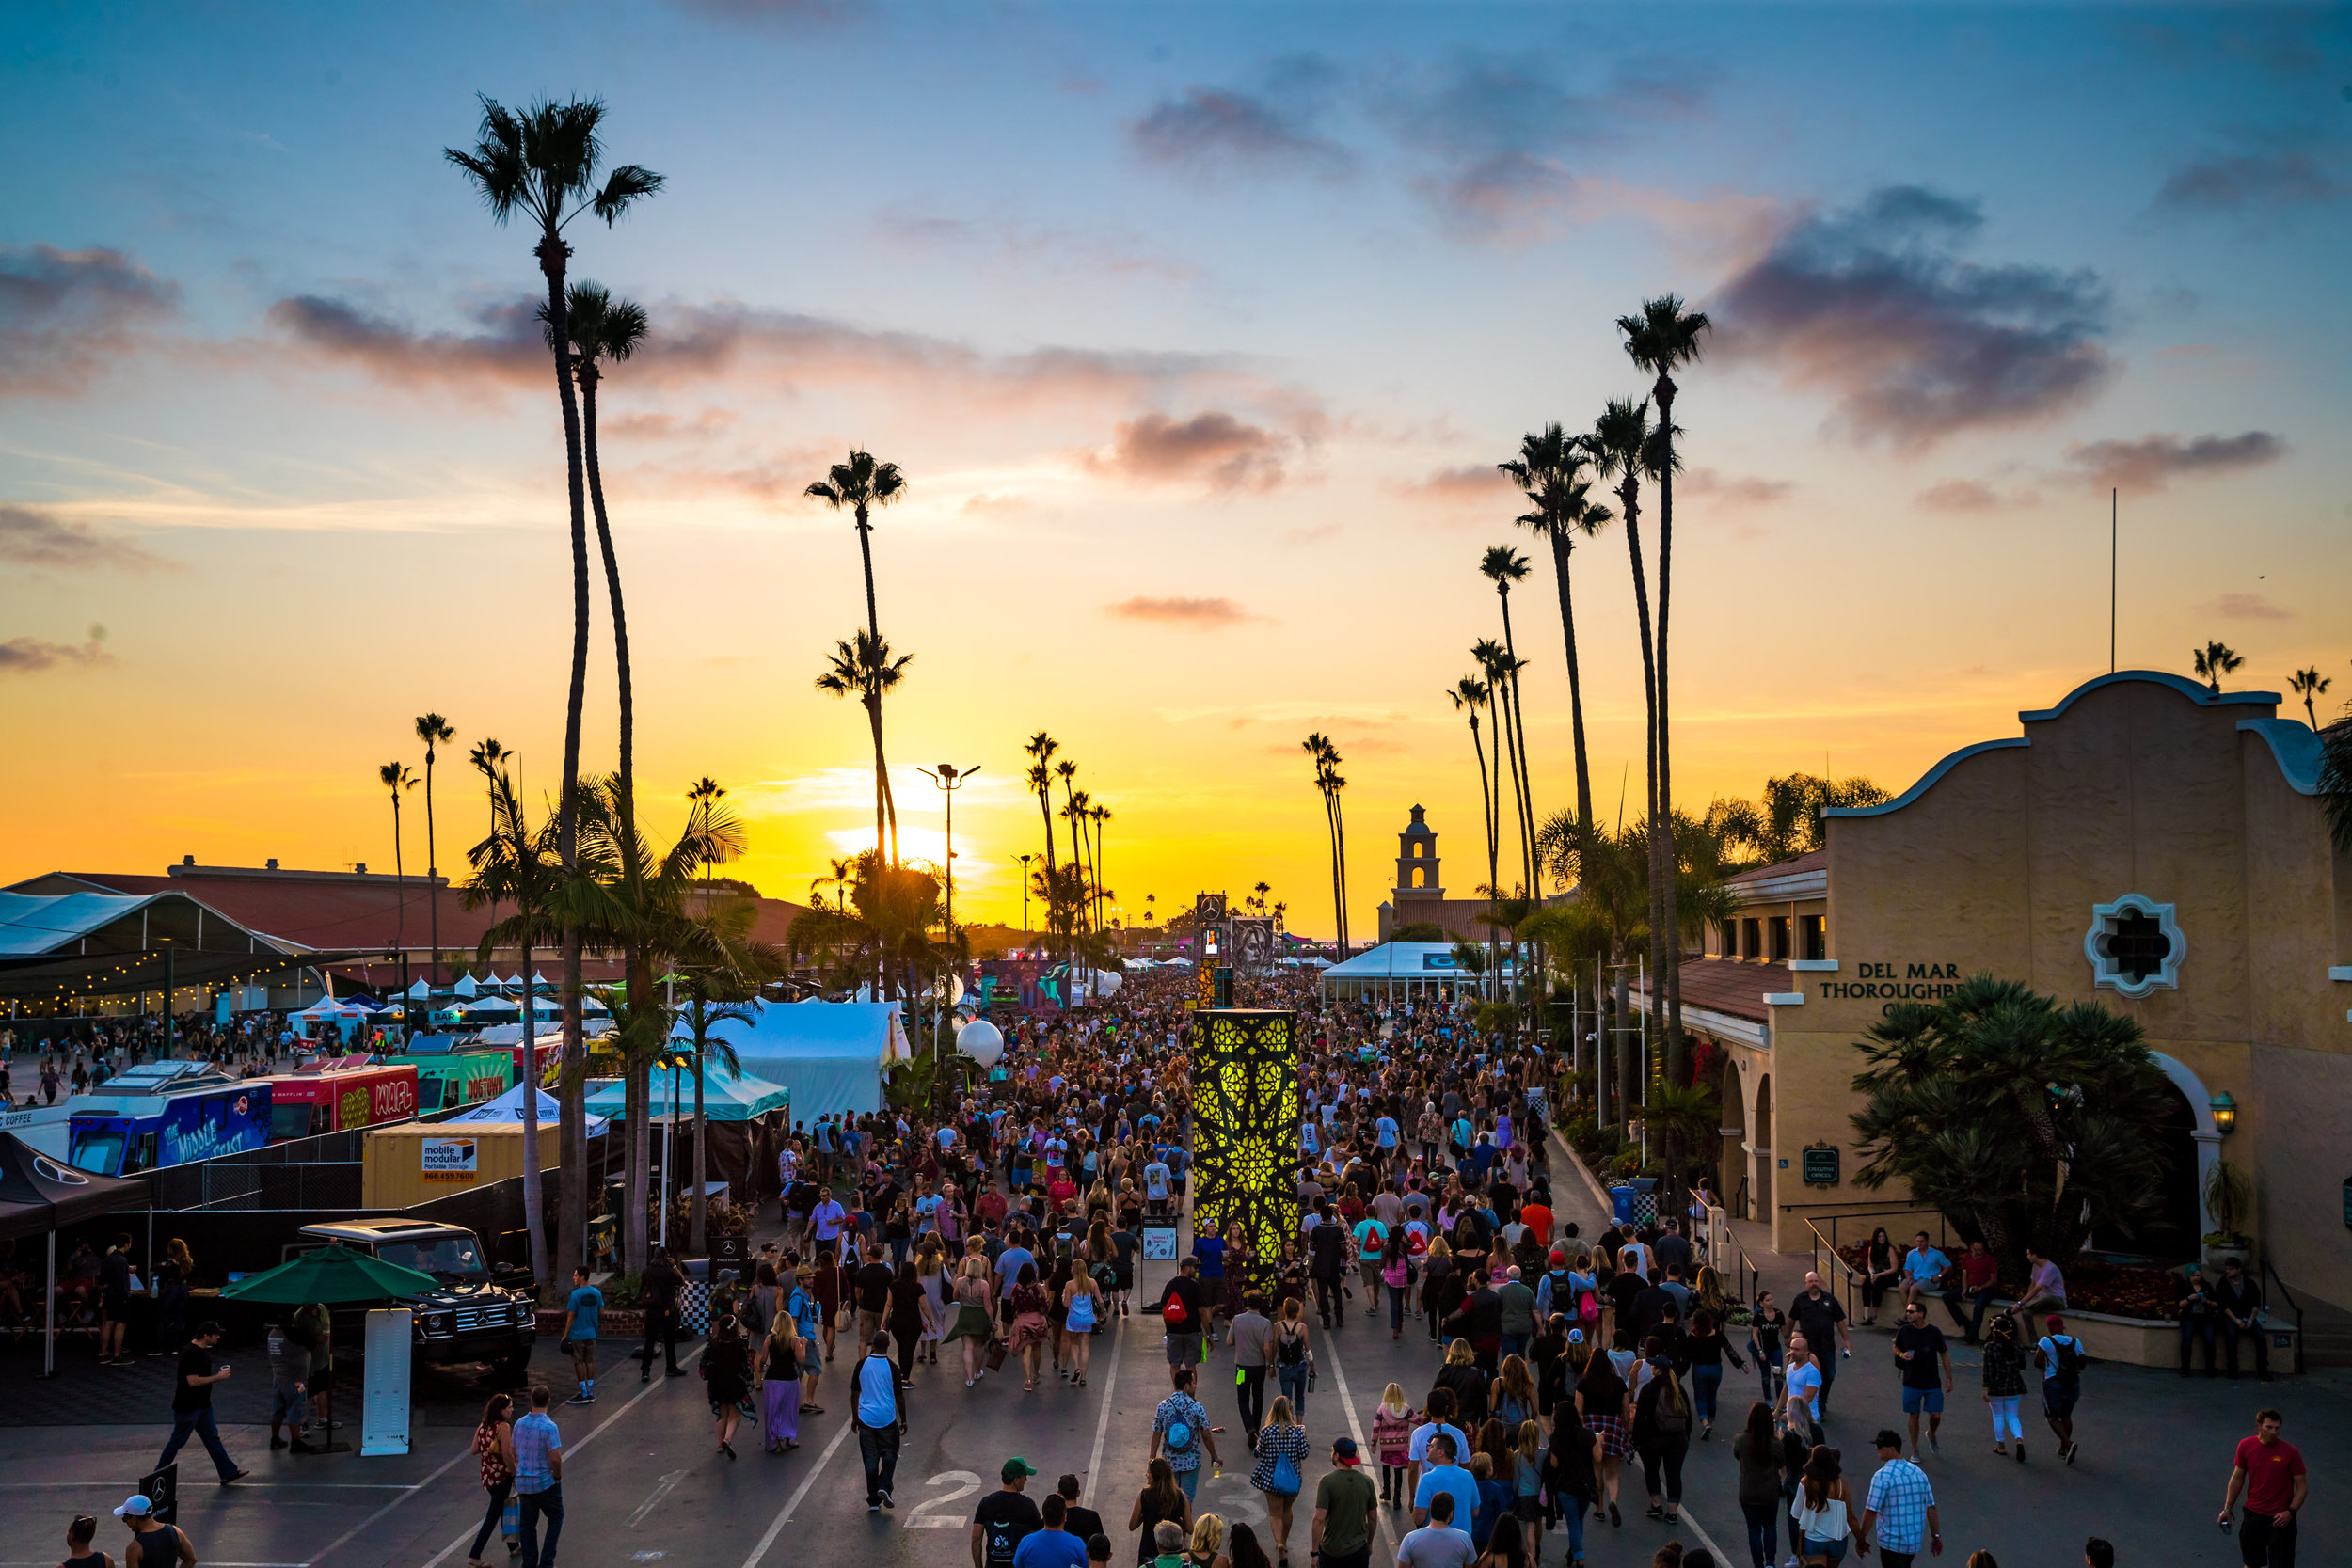 KAABOO2017_0916_184033-9218_ALIVECOVERAGE-ATW.jpg